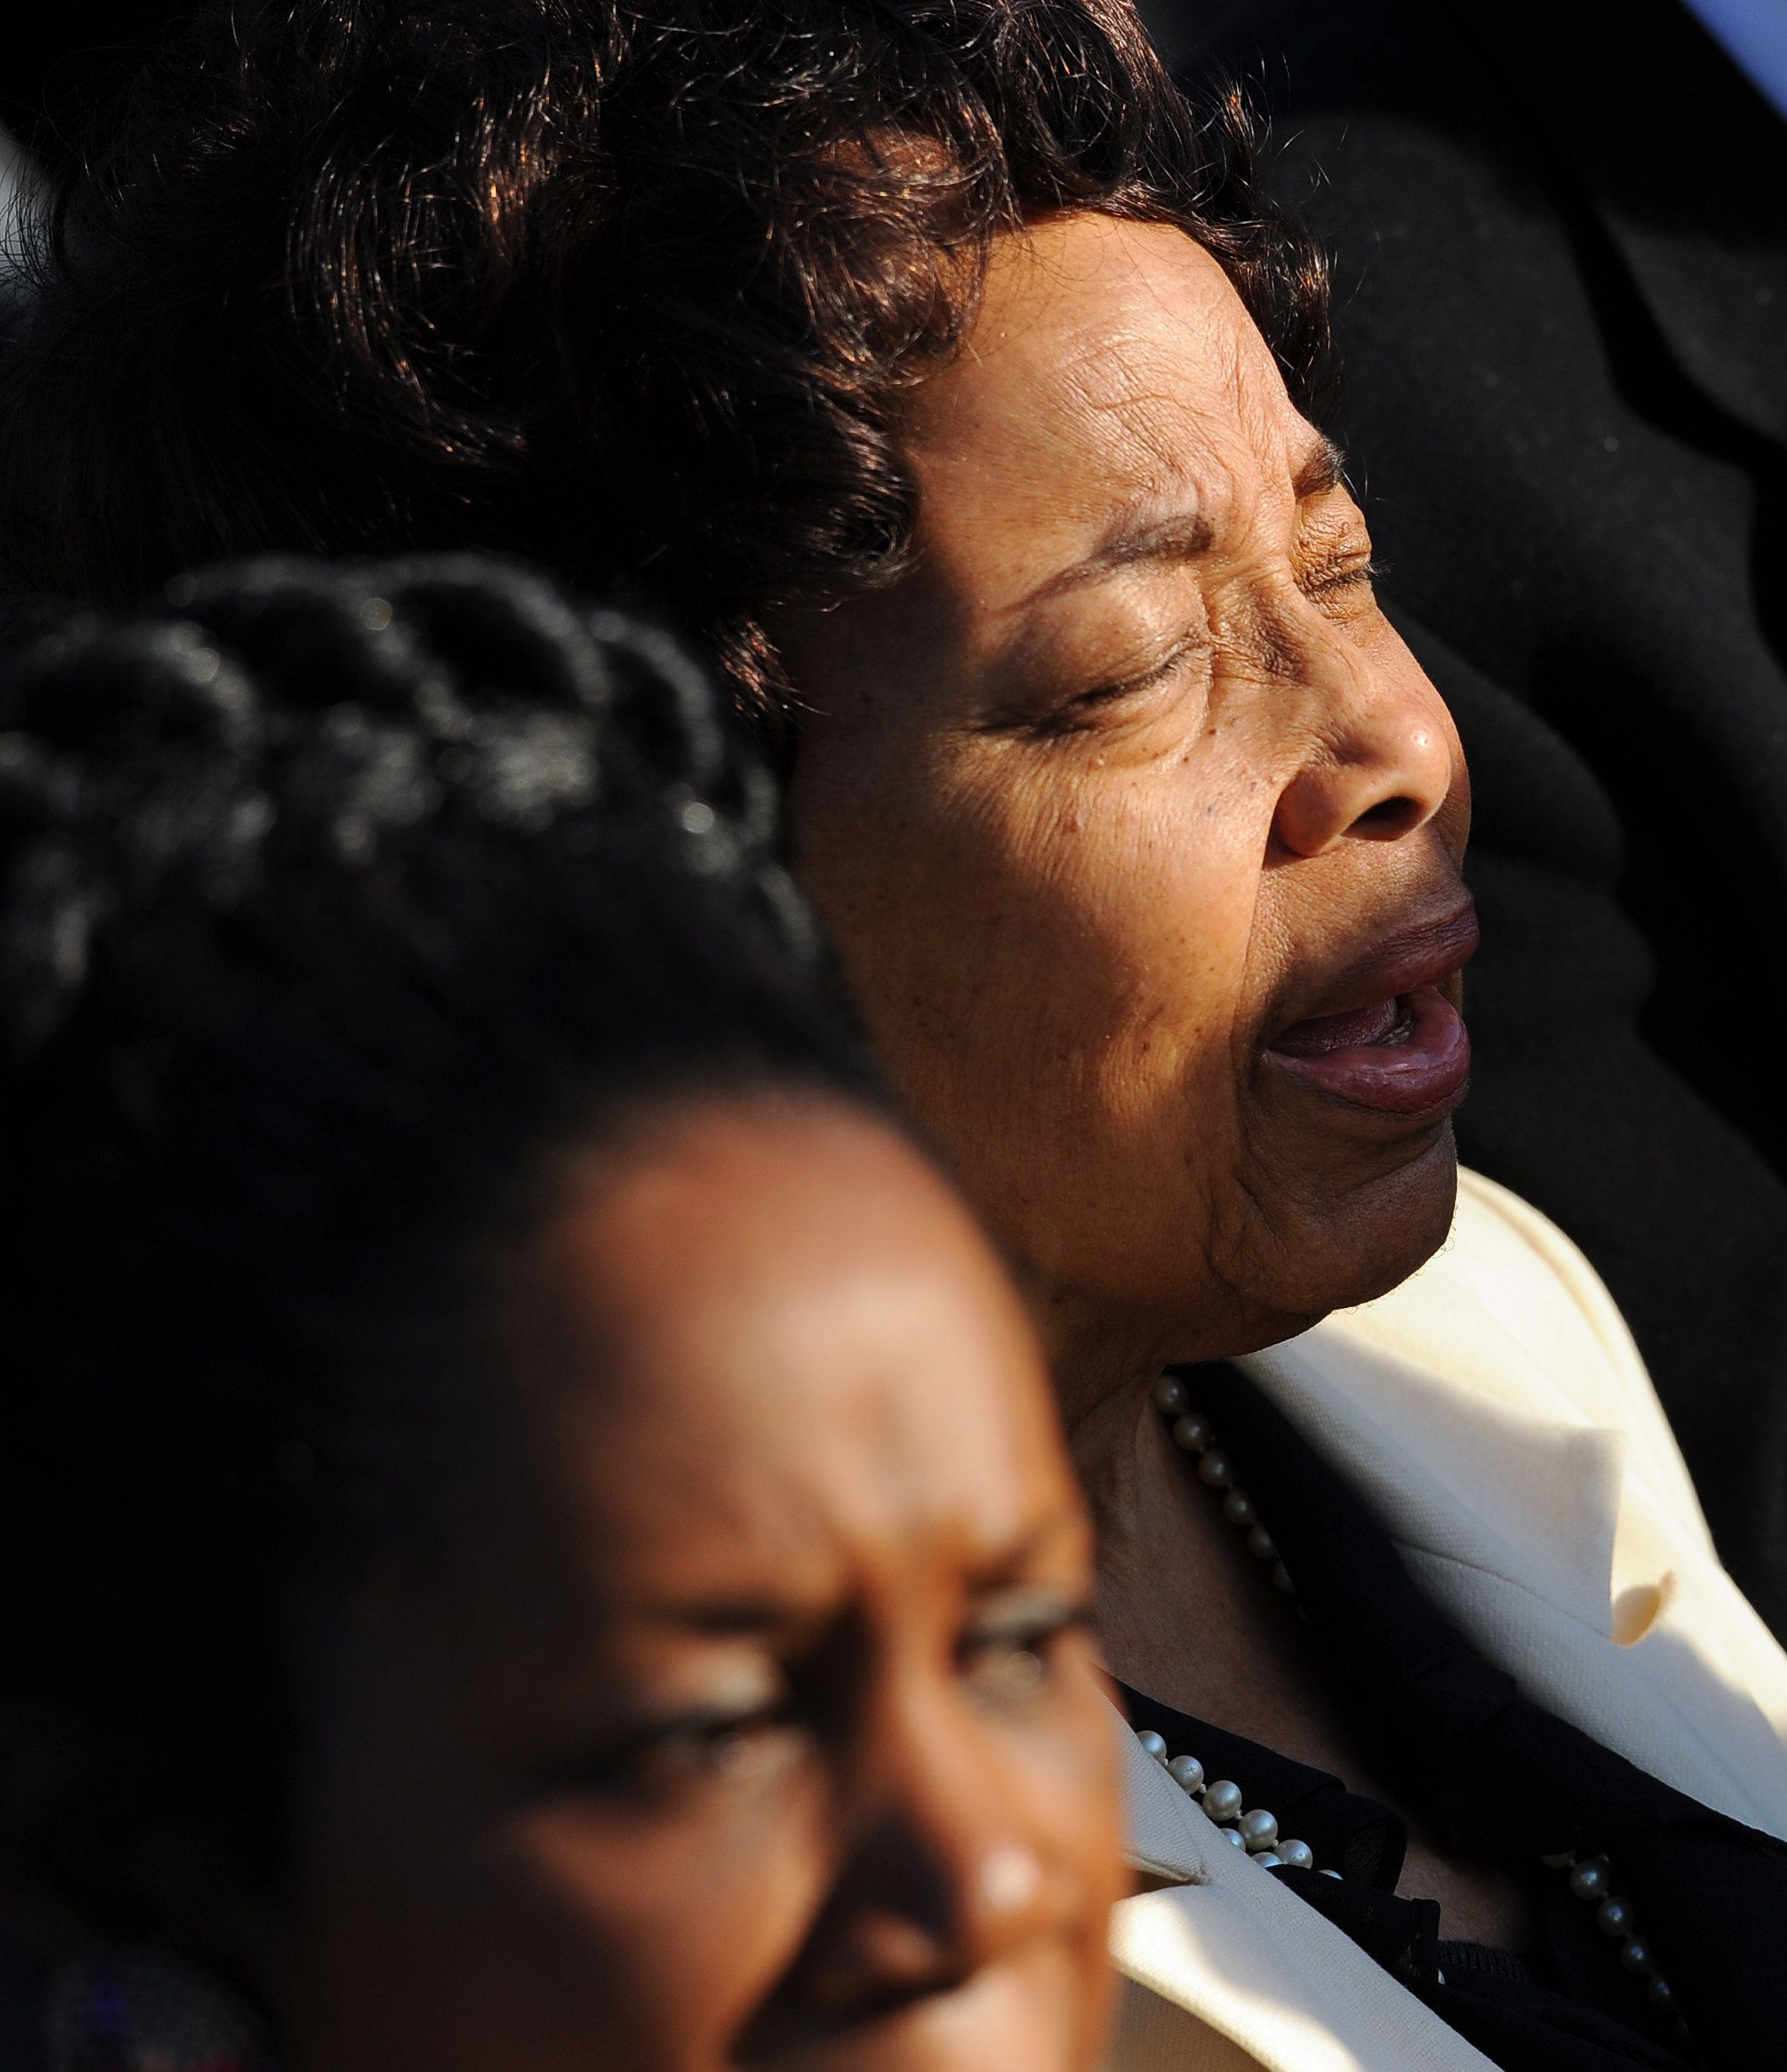 WASHINGTON , DC - OCTOBER 16: Dorothy Cotton of Ithaca, N.Y. sings along with the opening music during a dedication ceremony at The Martin Luther King, Jr. Memorial on October 16, 2011 in Washington, D.C. (Photo by Ricky Carioti/The Washington Post via Getty Images)